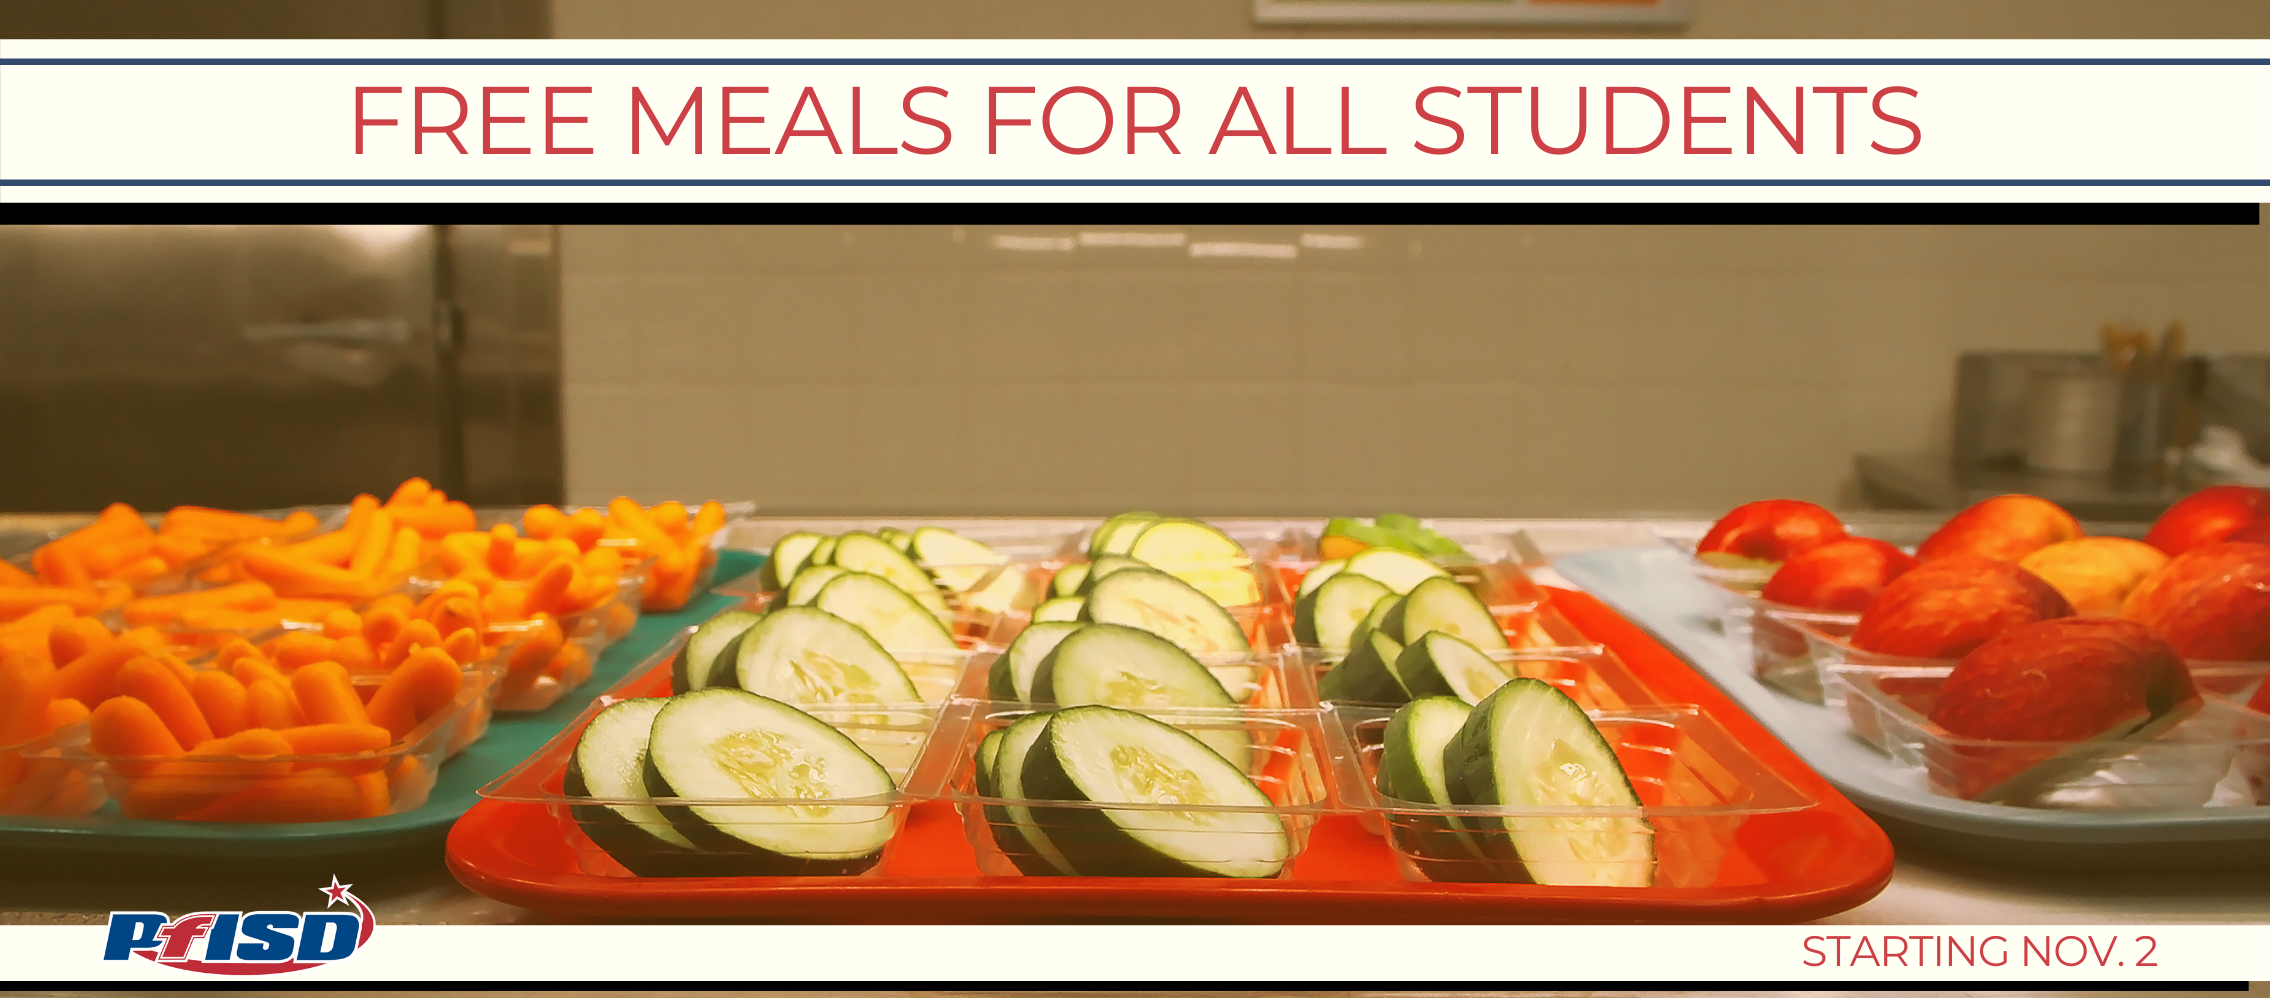 Free meals for all students